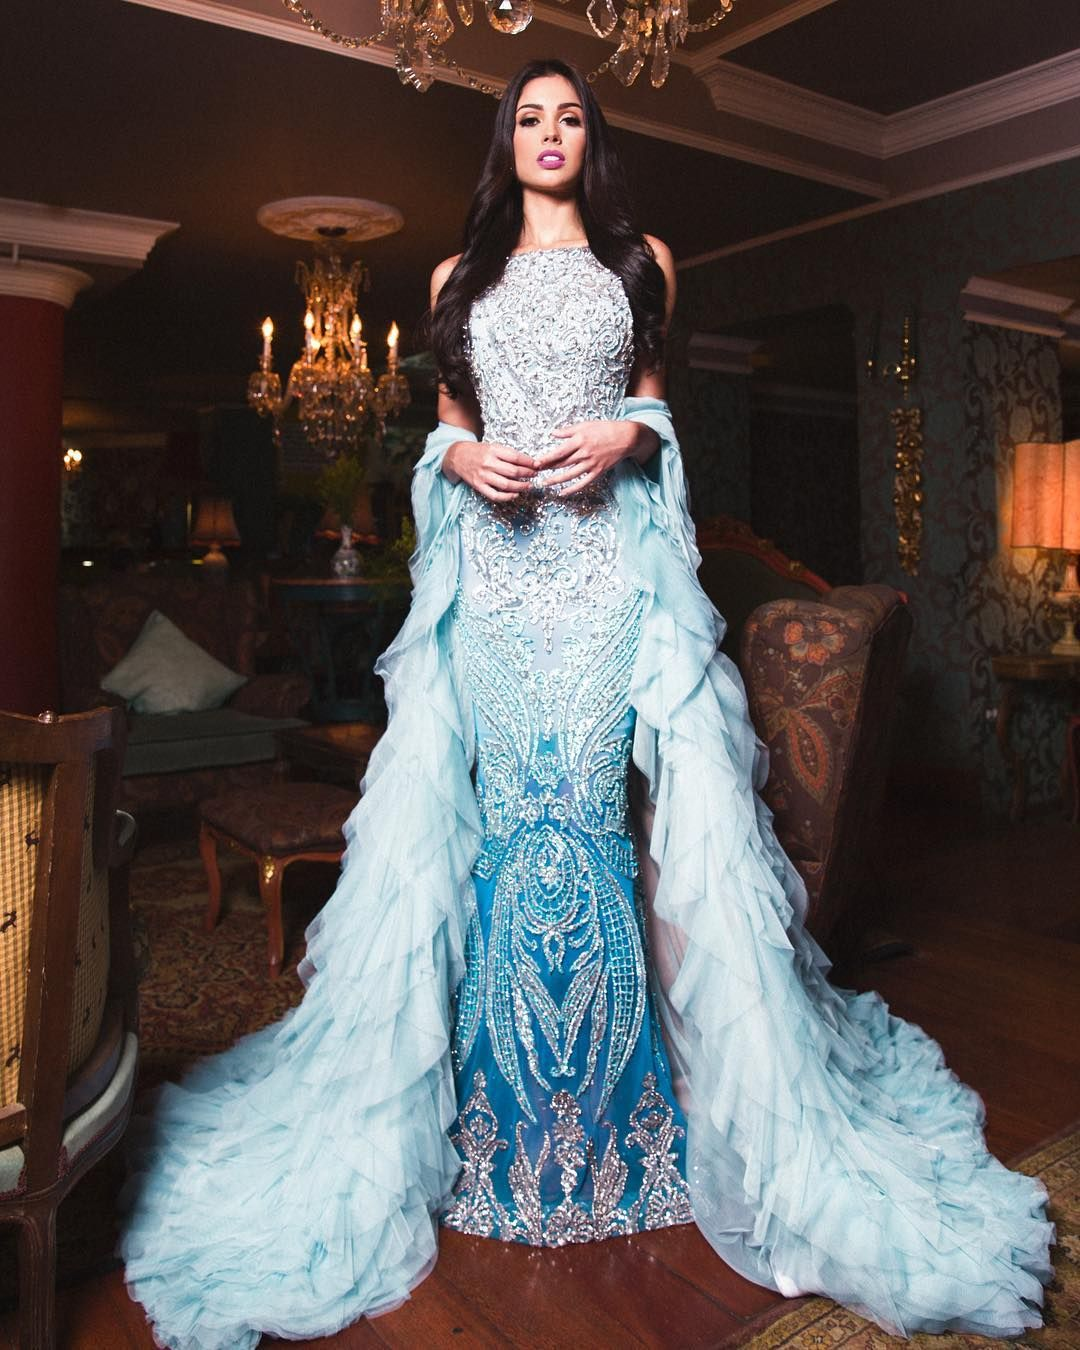 Stunning evening gown couture made by Alejandro Fajardo. Starring ...